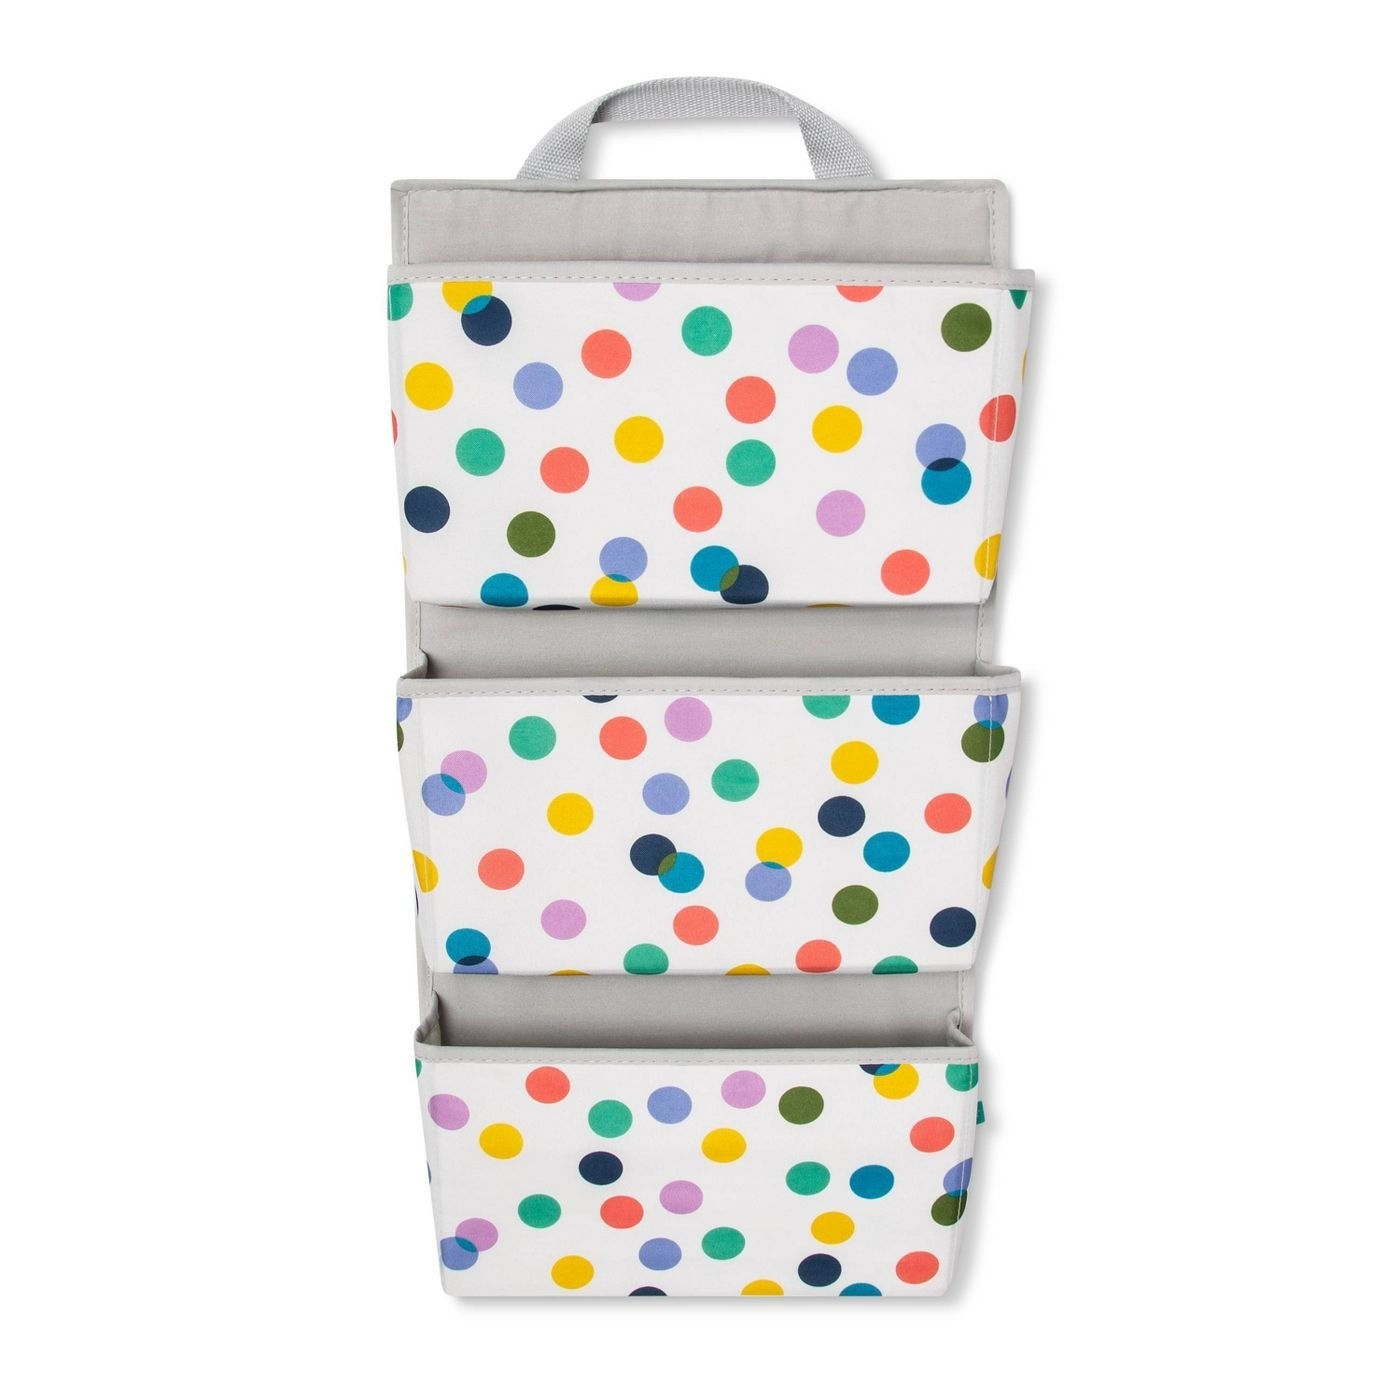 Hanging wall storage with polka dots